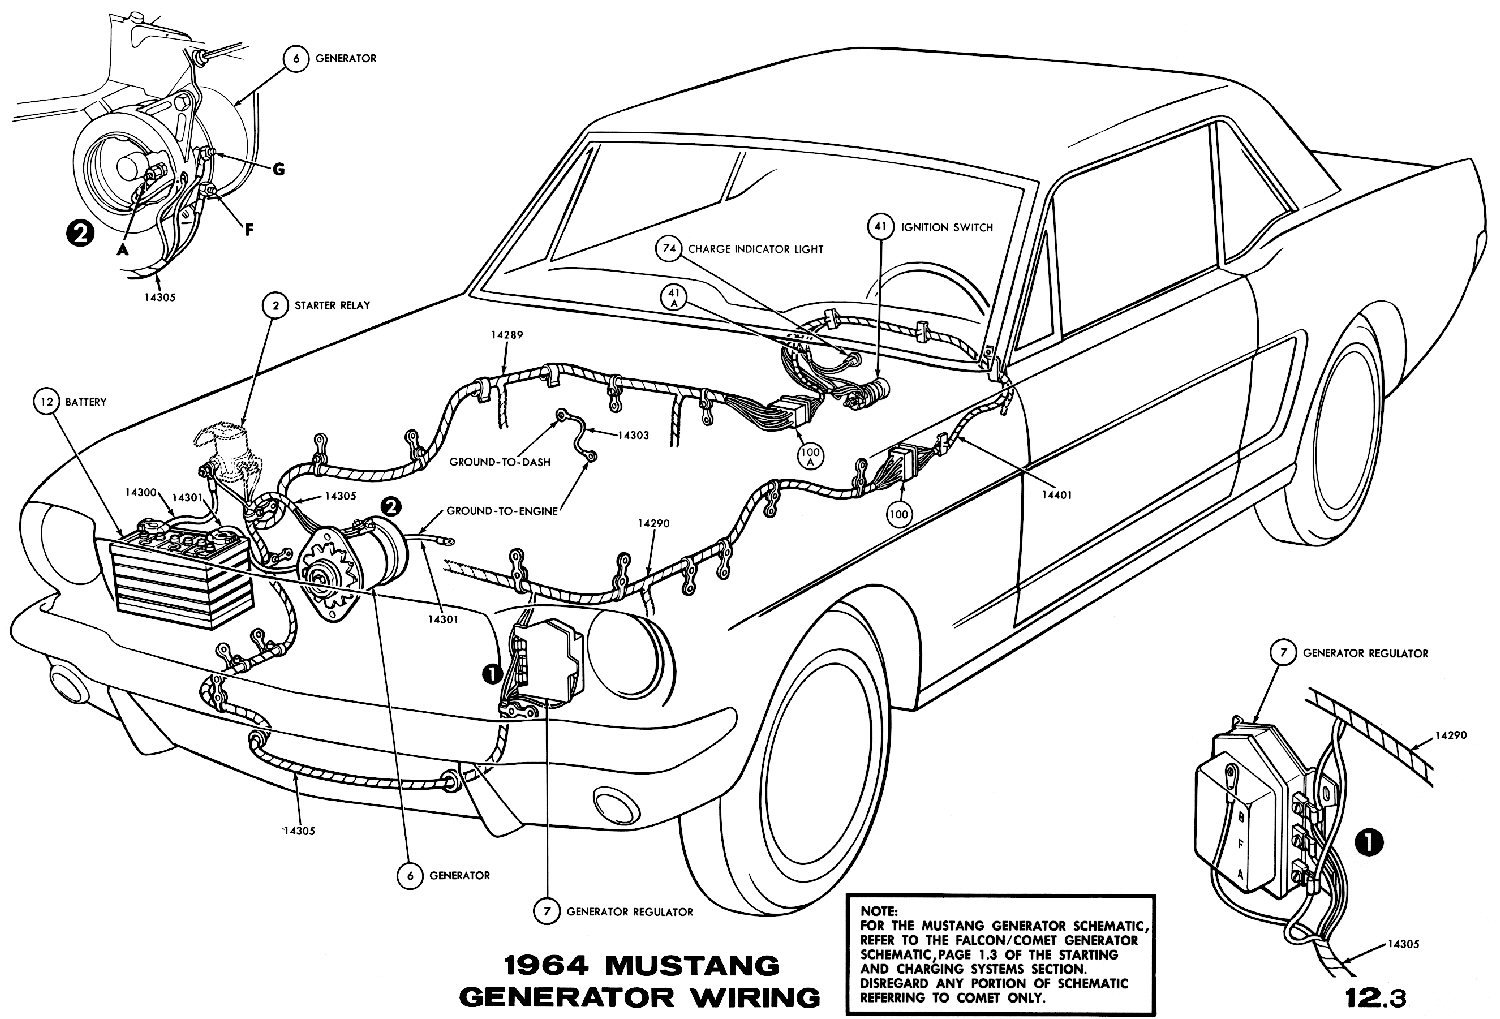 66 Ford Fairlane Wiring Diagrams Regulator Library 12 Volt Auto Coil Sm1964f 1964 Mustang Generator Pictorial Or Schematic